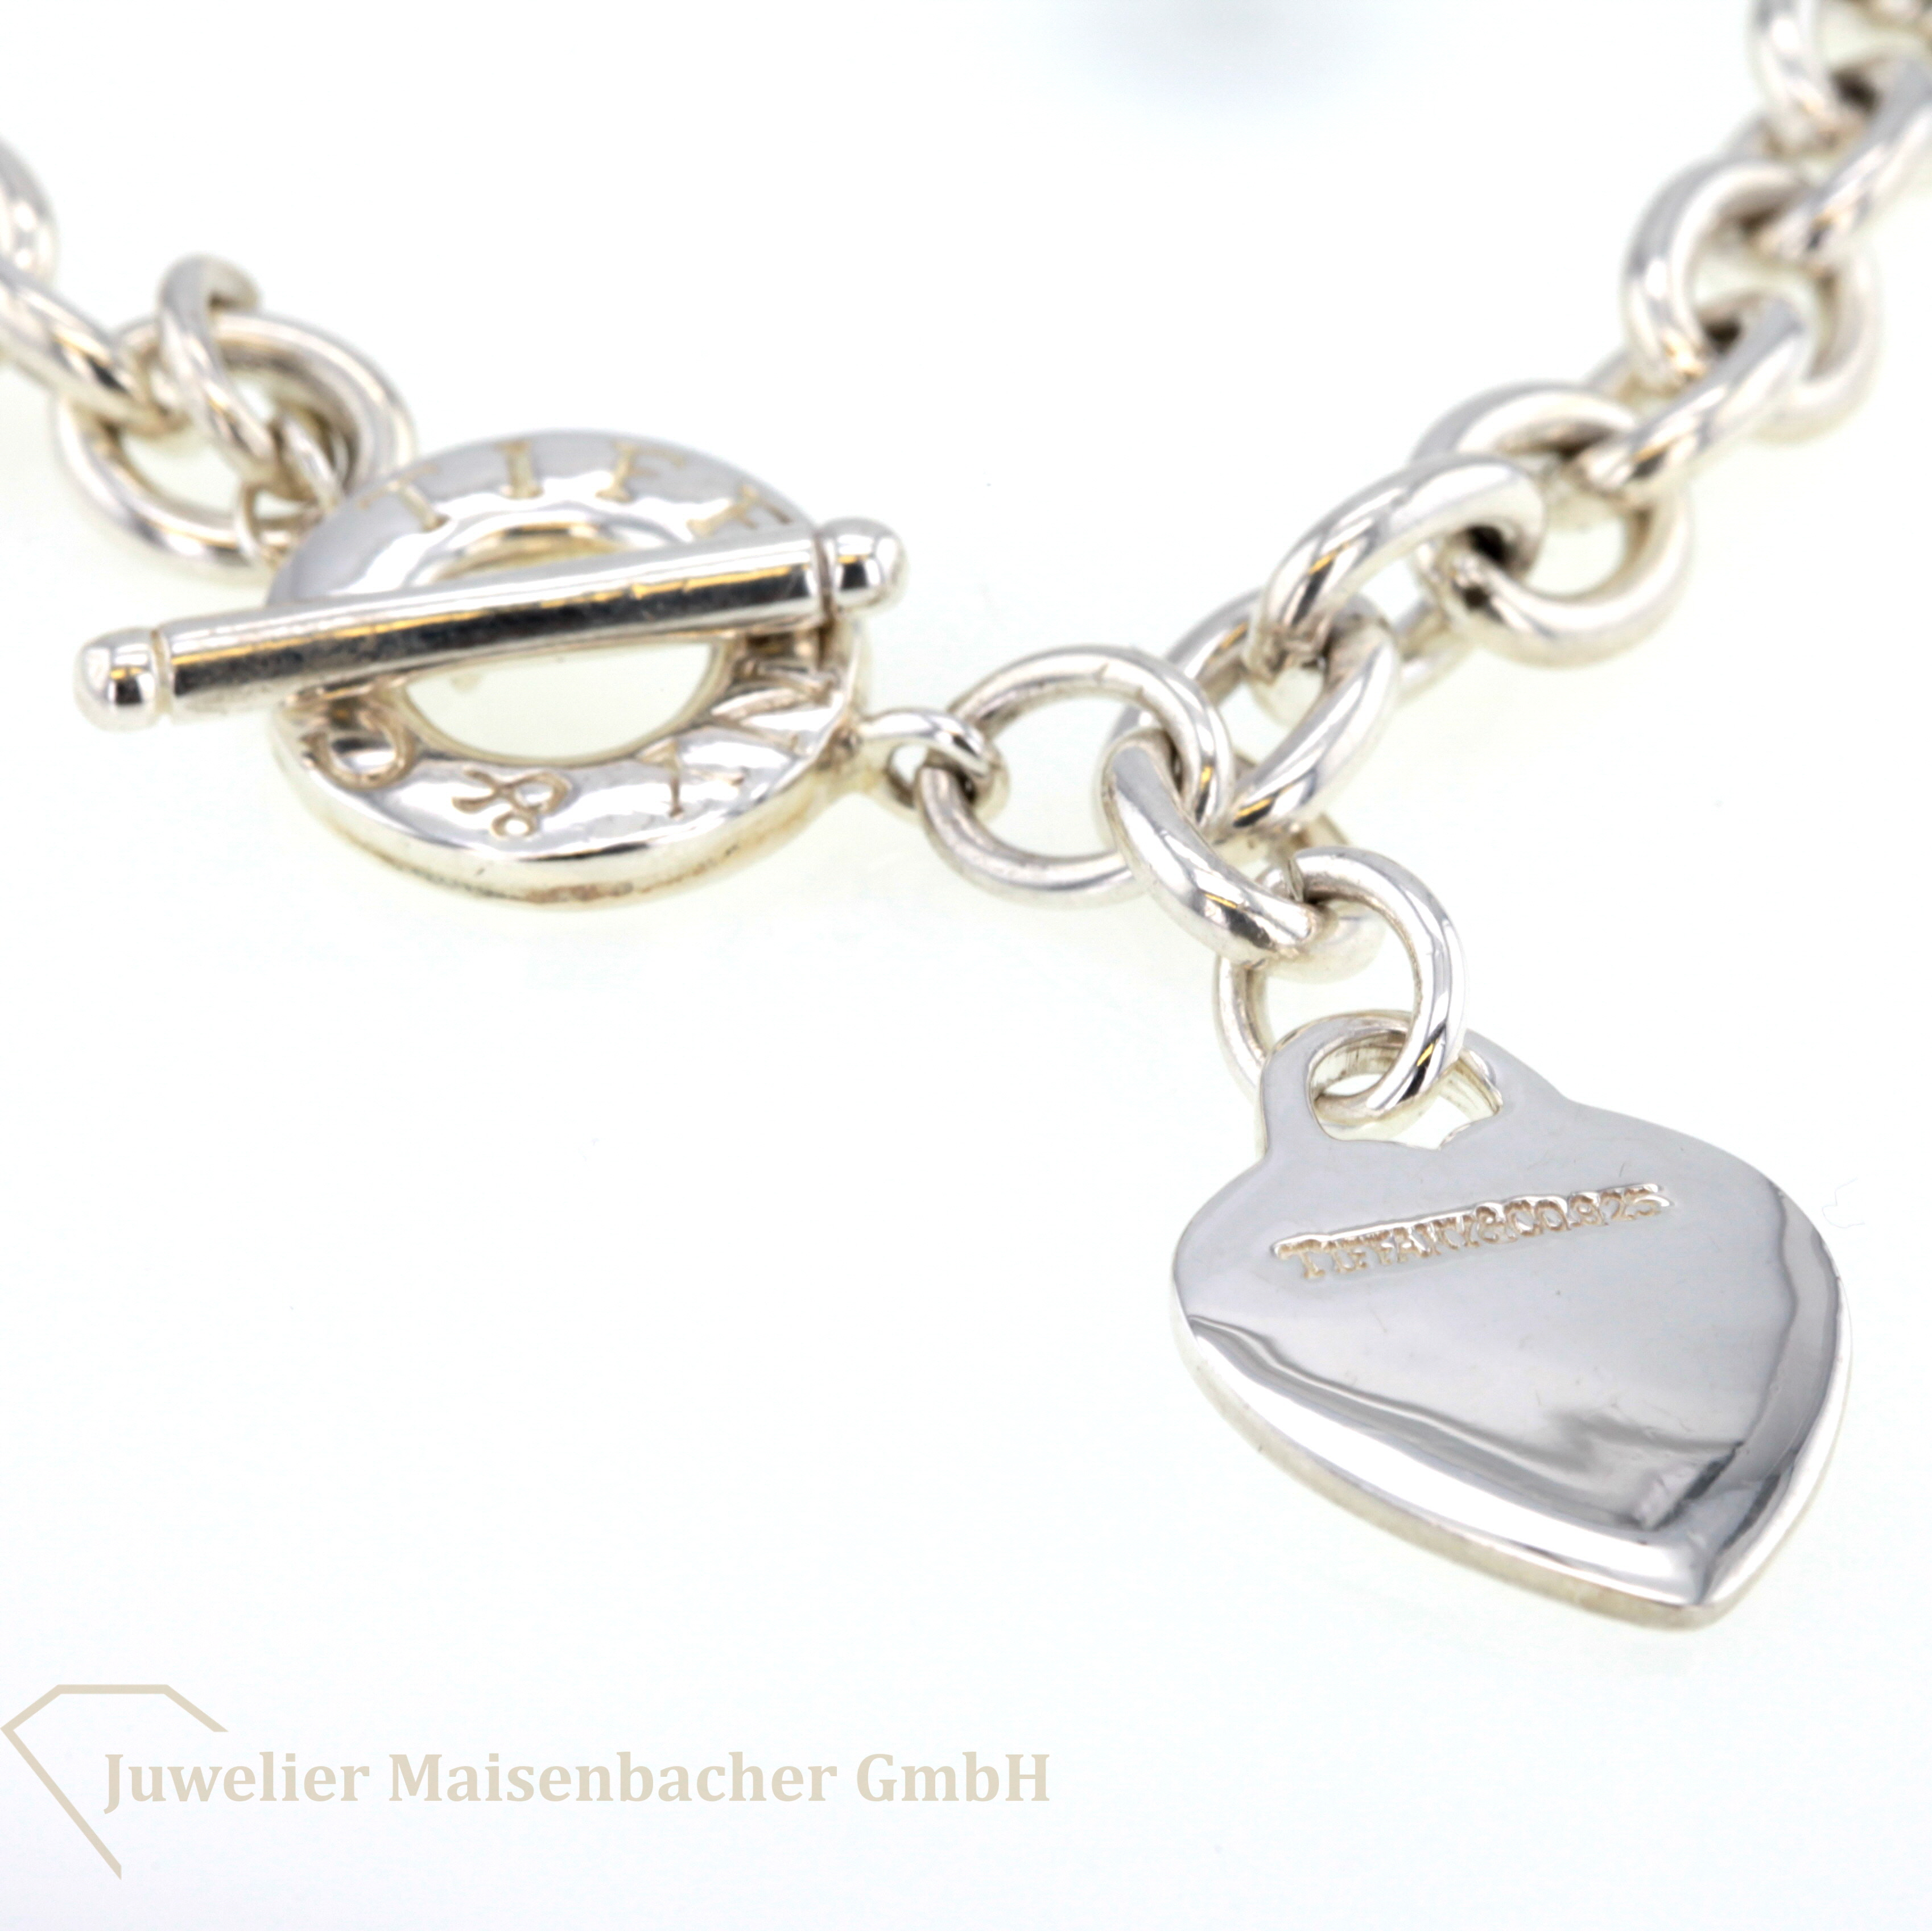 tiffany-co-collier-kette-01 Wunderbar Tiffany Herz Kette Dekorationen